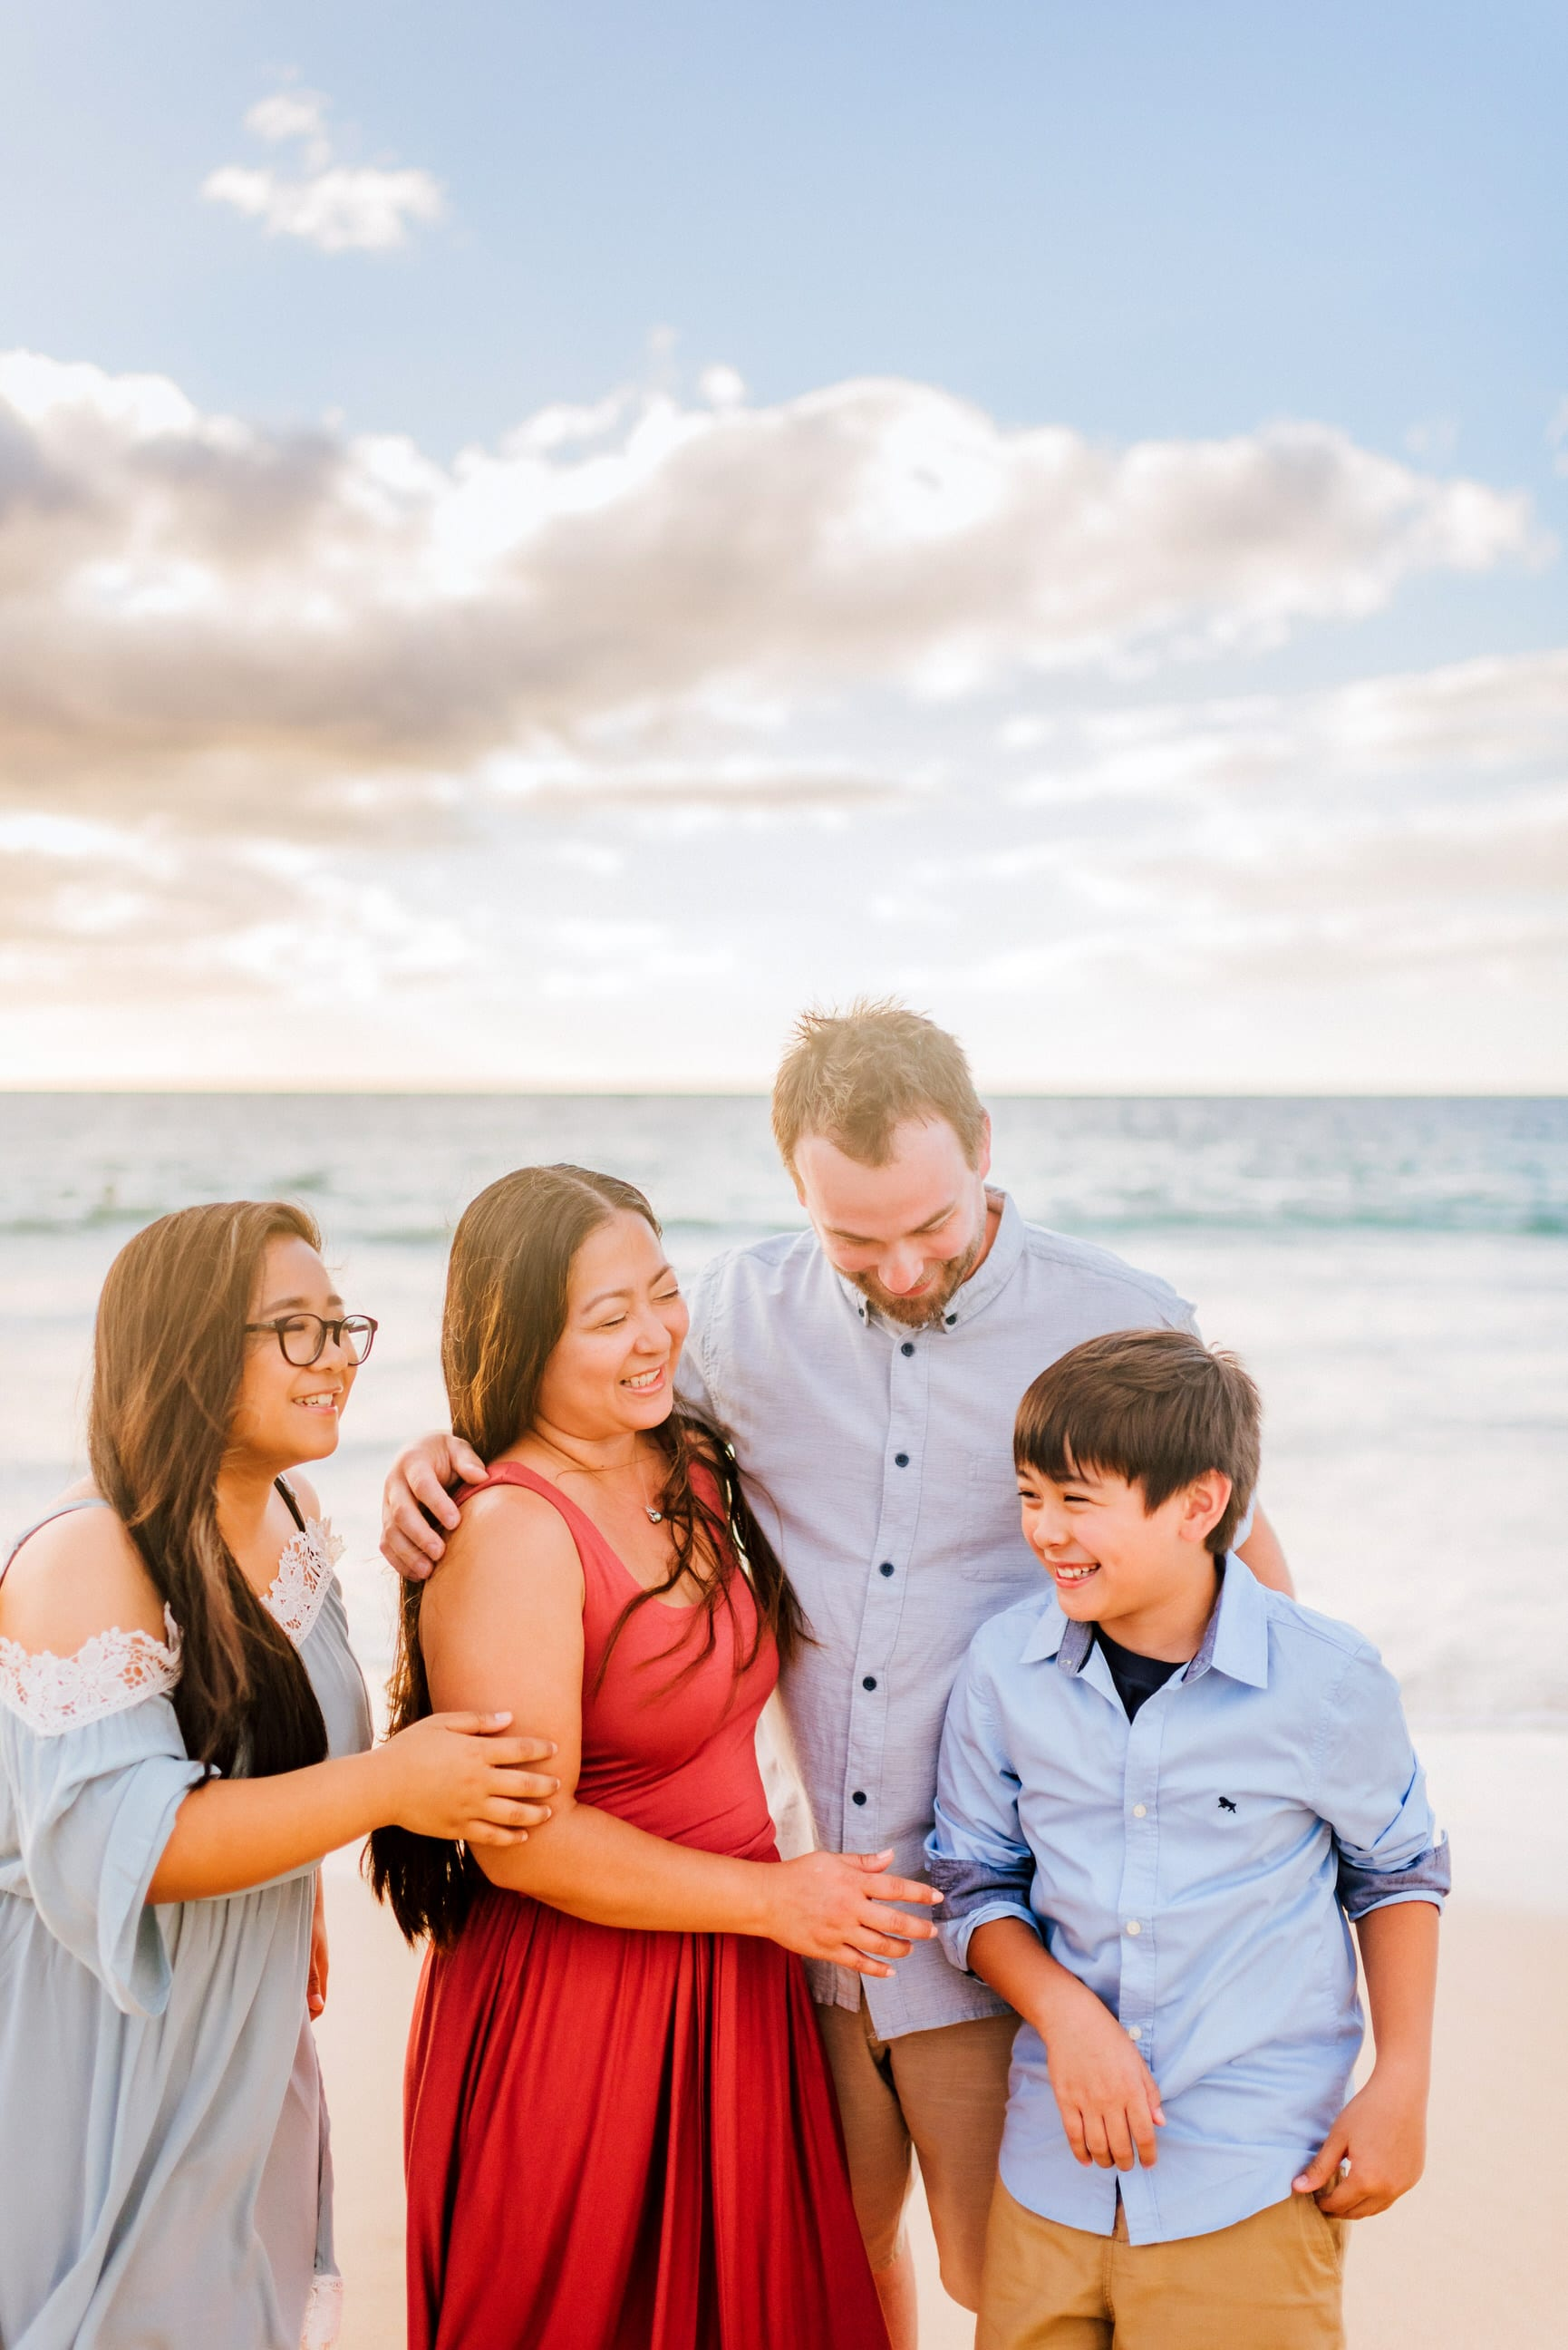 Family-Photographer-Big-Island-Hawaii-2.jpg